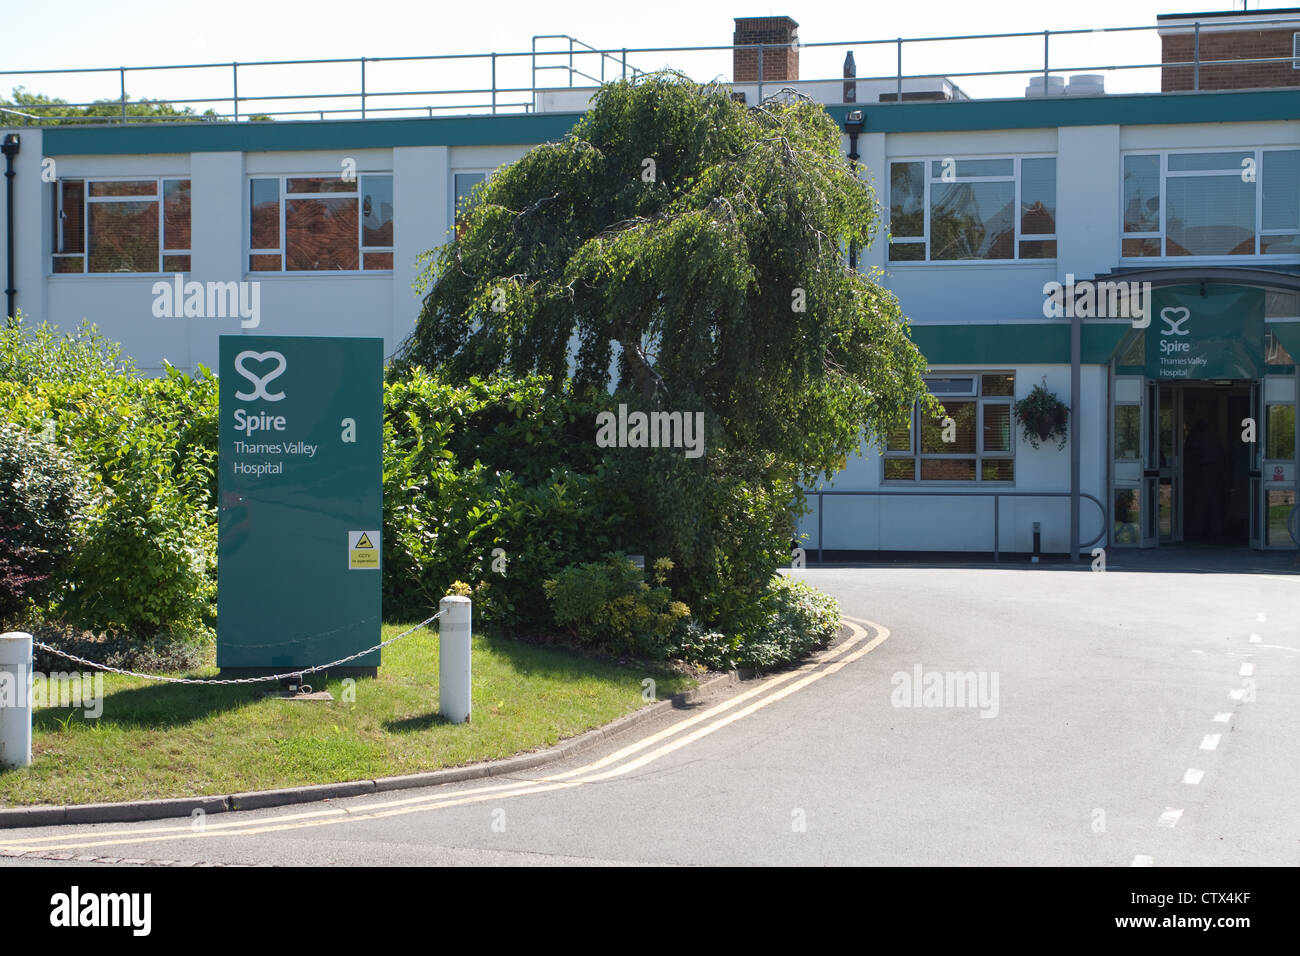 The private Spire Thames Valley Hospital in Wexham, Buckinghamshire. - Stock Image